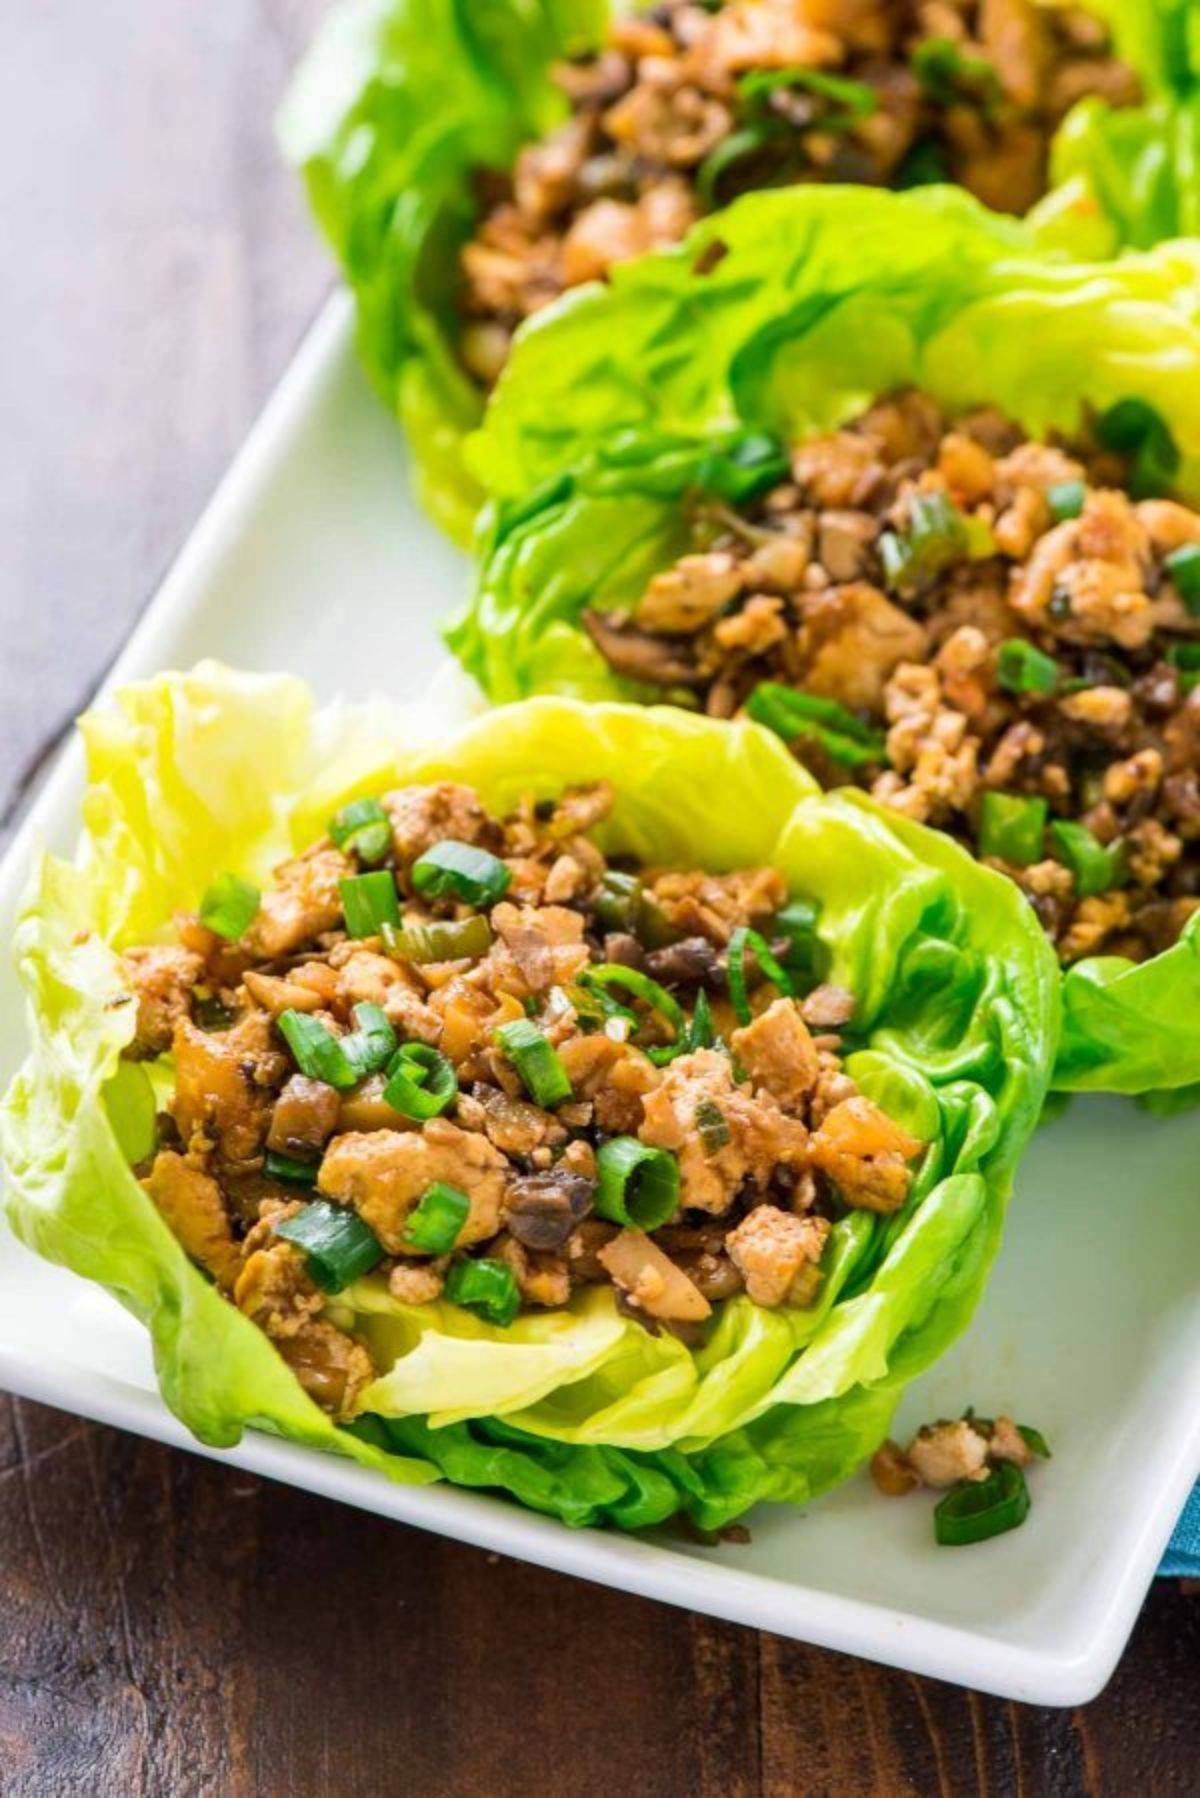 On a dark wooden table is a partial shot of a rectangular white plate. On this are lettuce cups filled with bean and vegetable mix